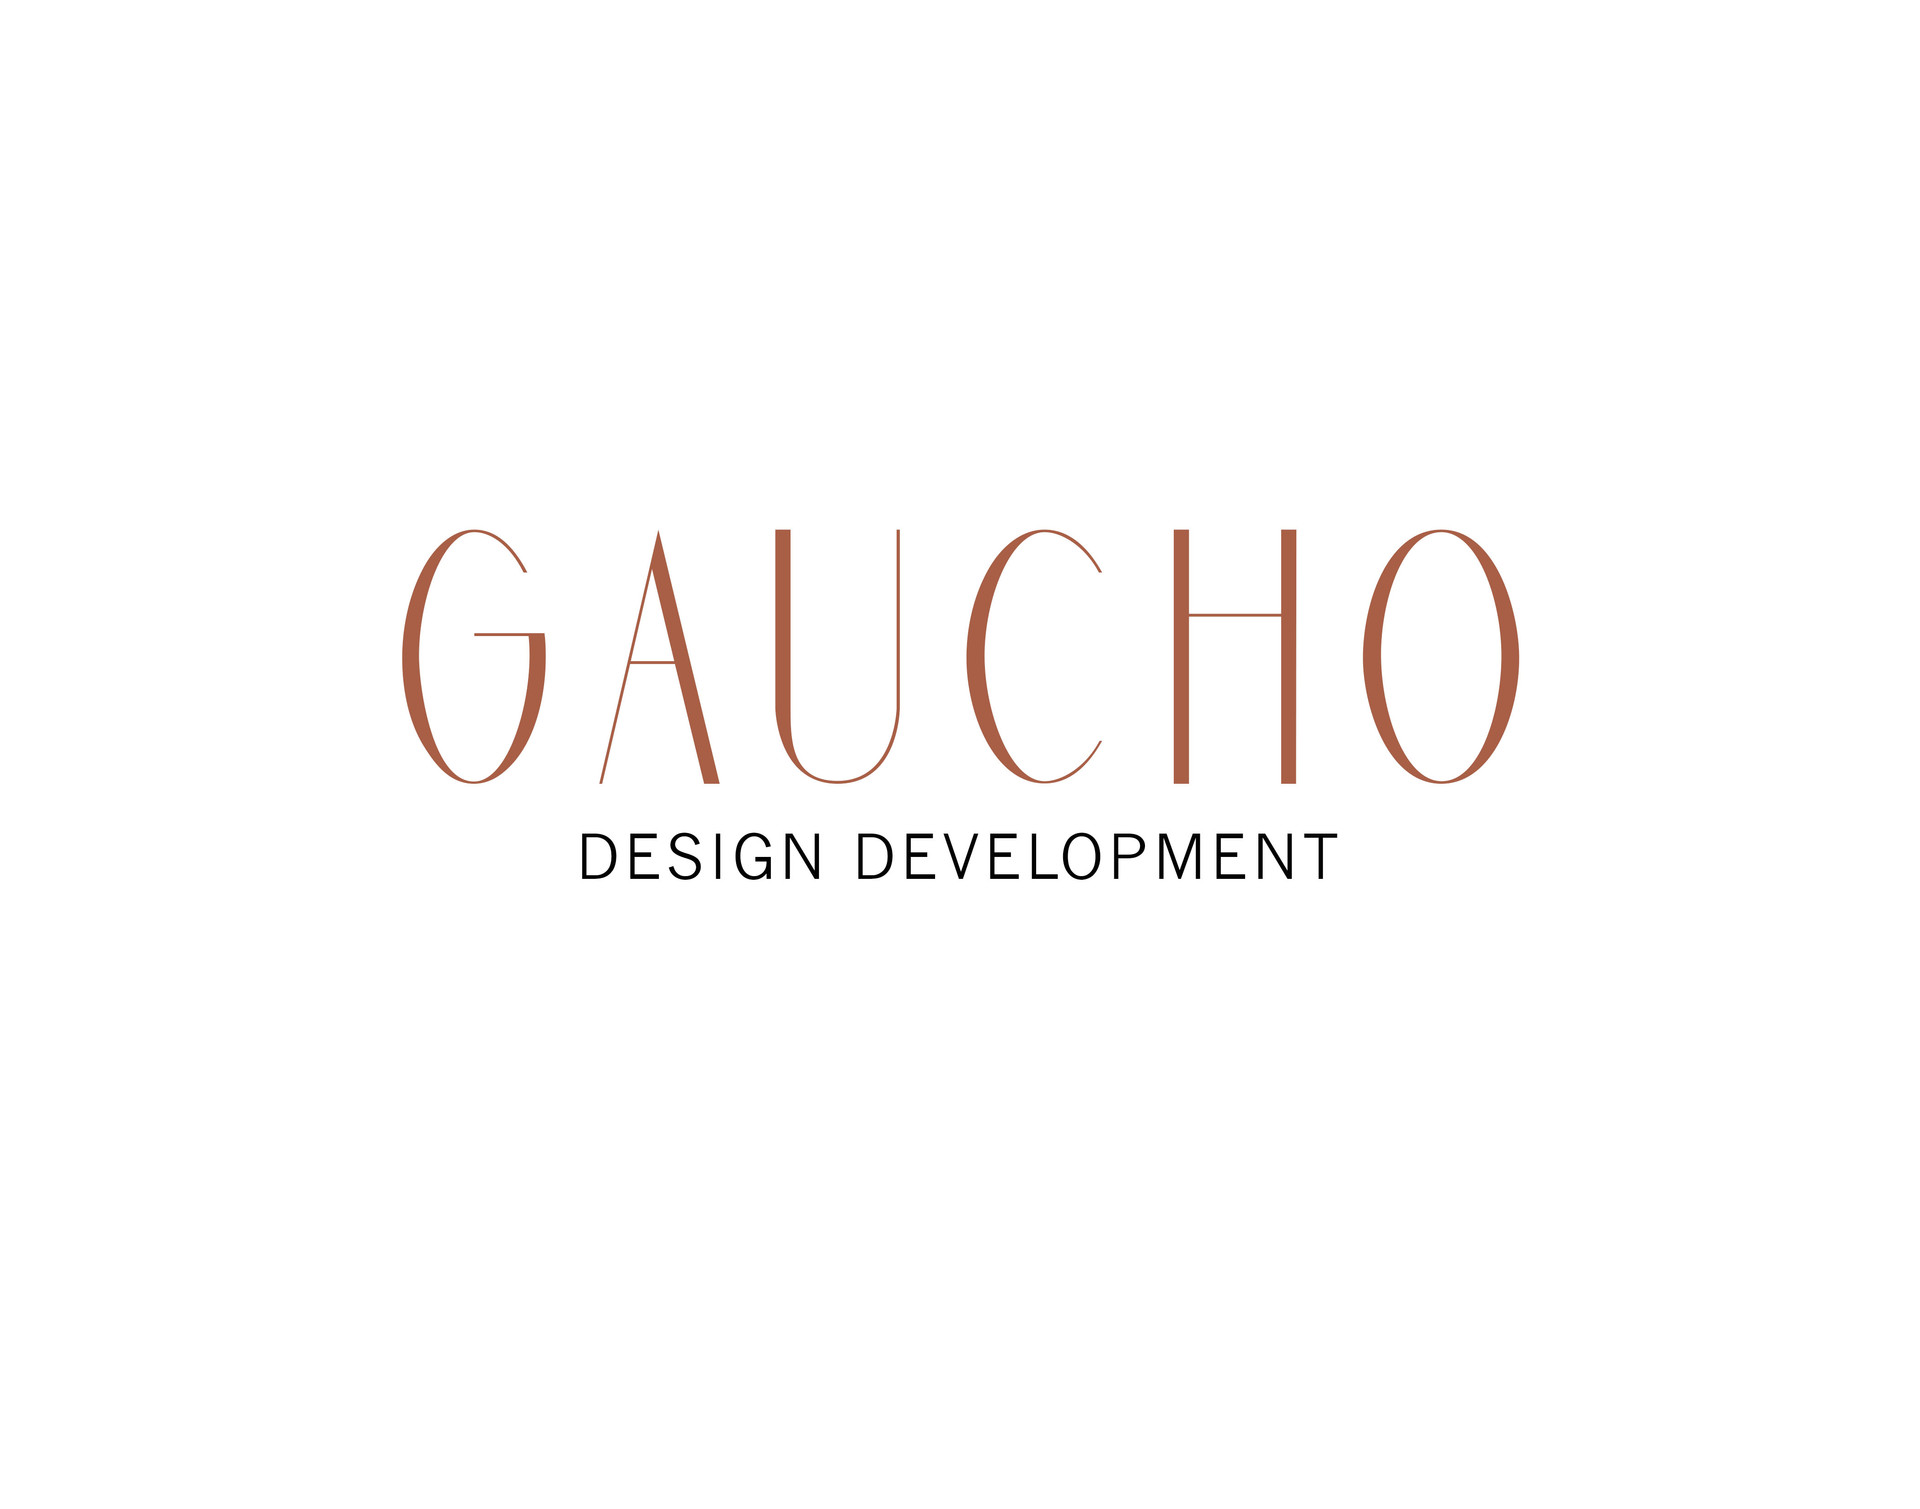 Gaucho design development.jpg